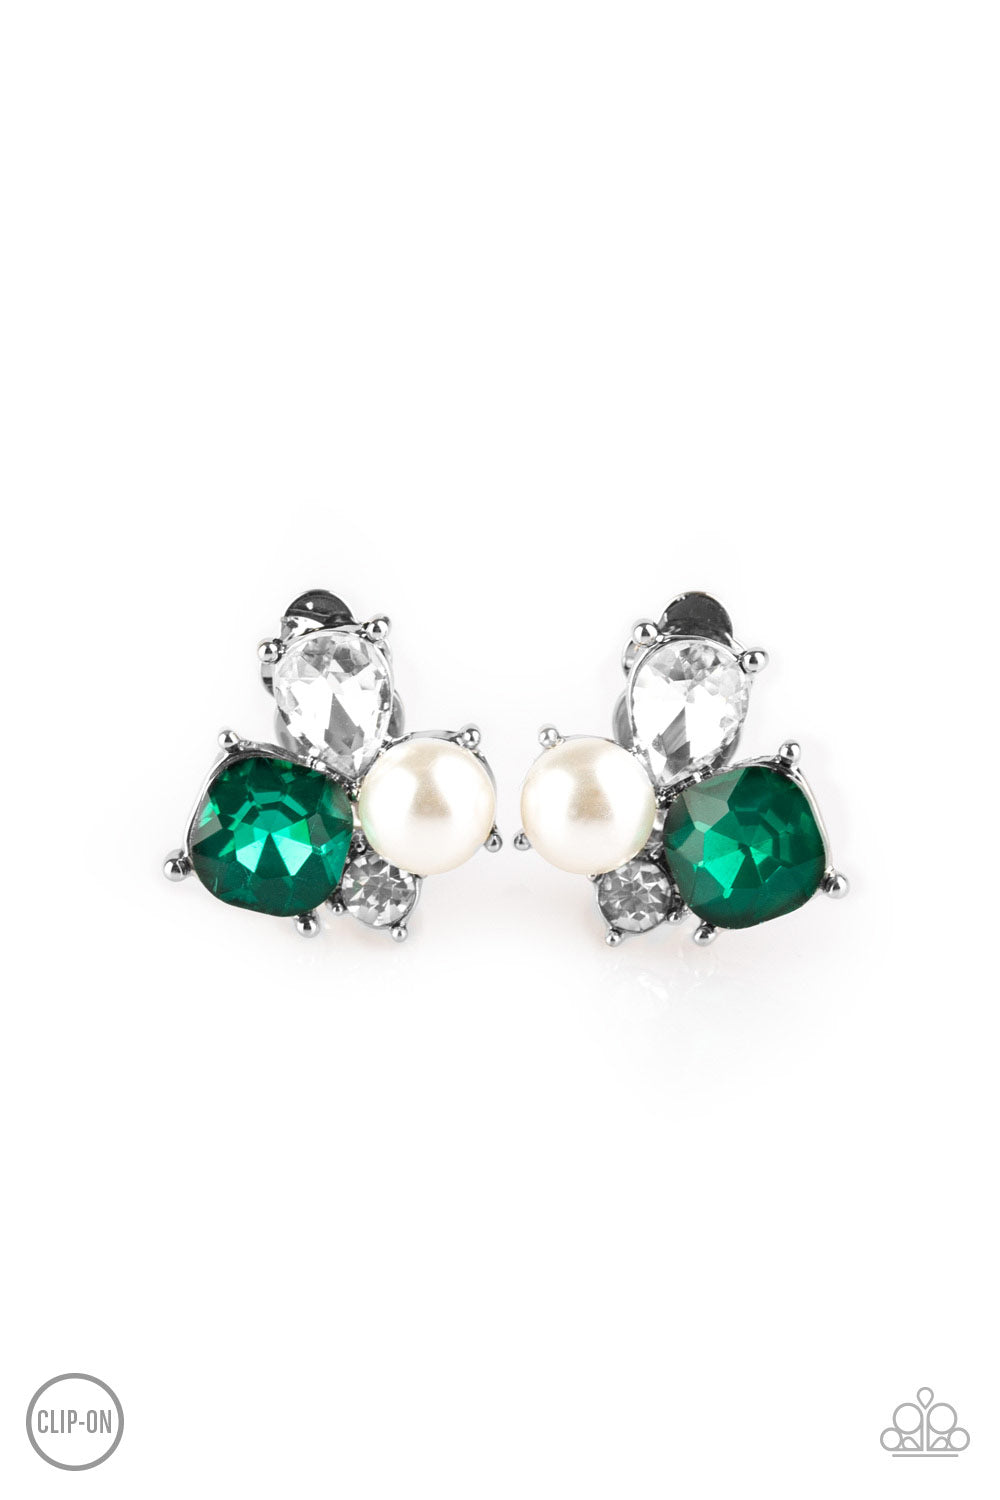 Paparazzi Highly High-Class Green Clip-On Earrings